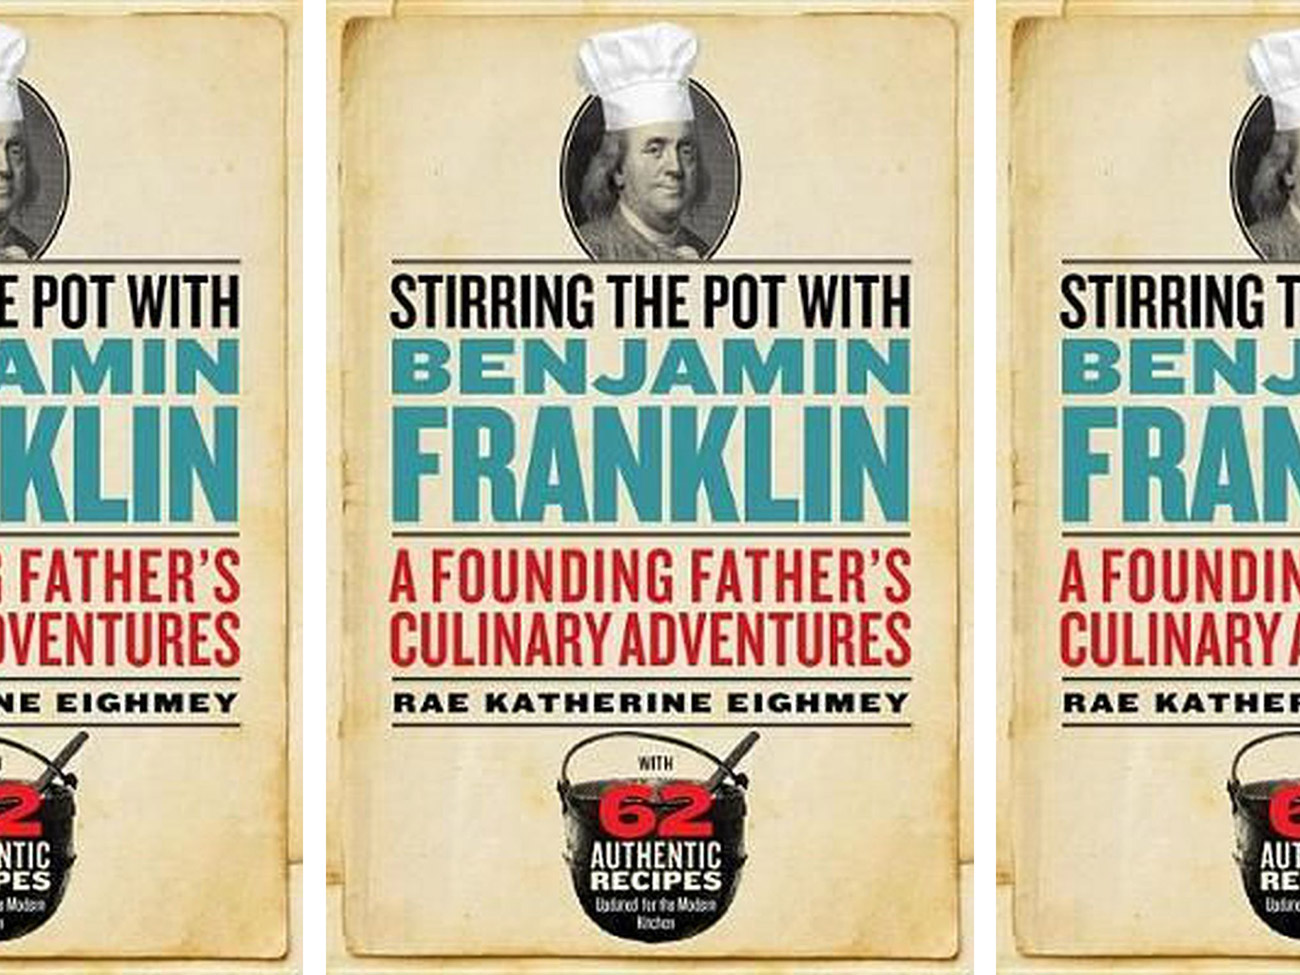 ben franklin cookbook